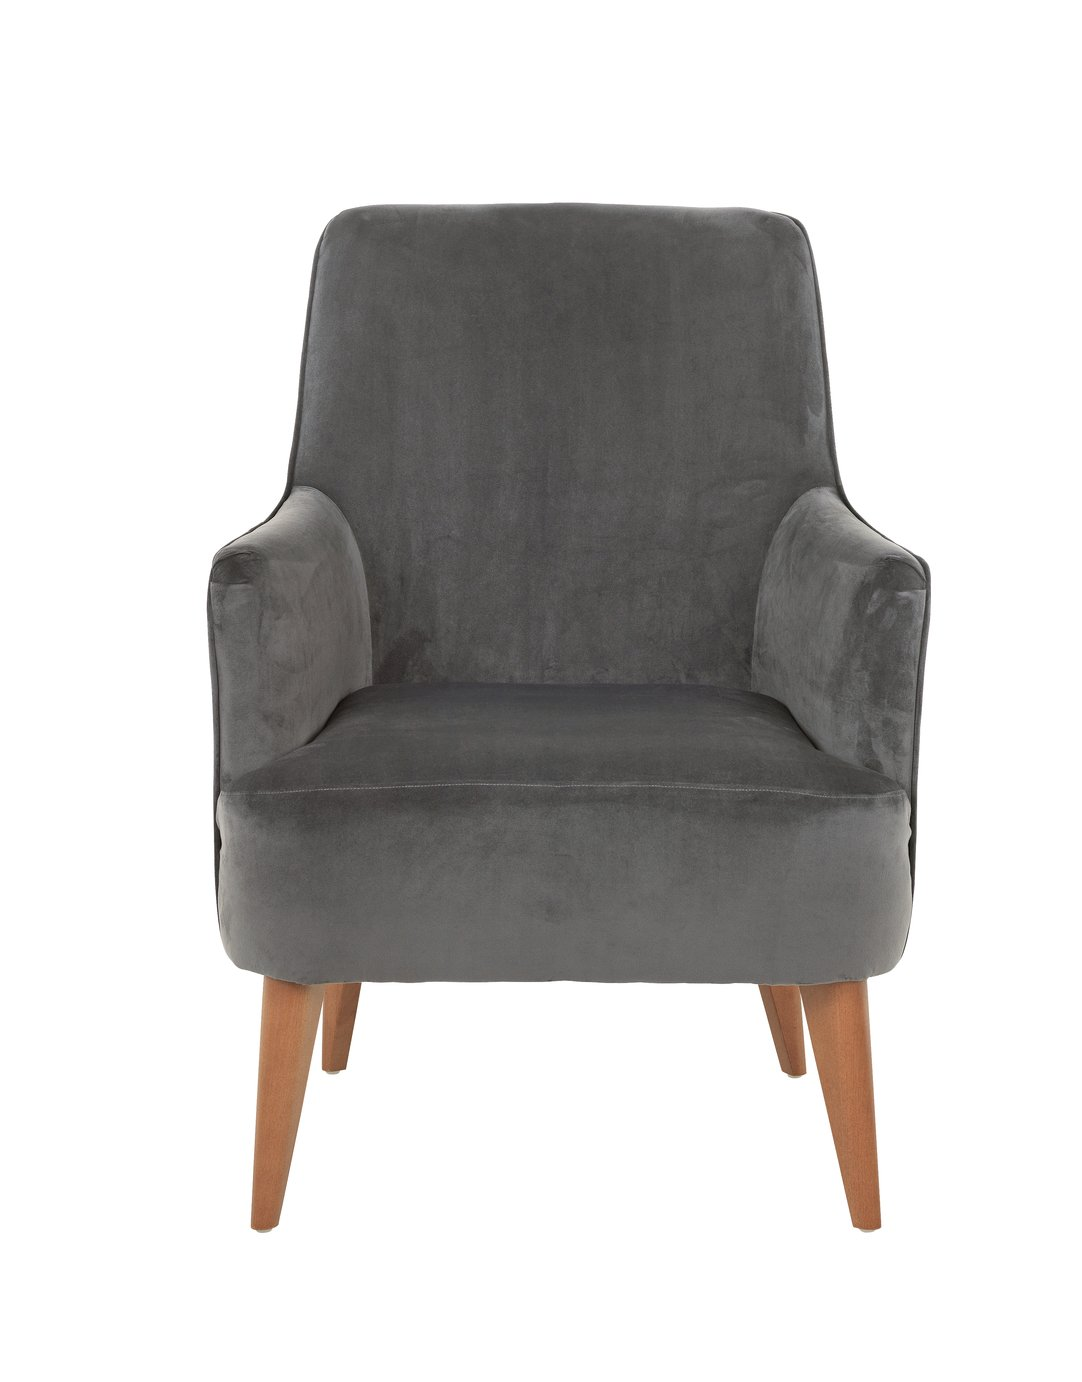 Argos Home Molly Velvet Accent Chair - Charcoal